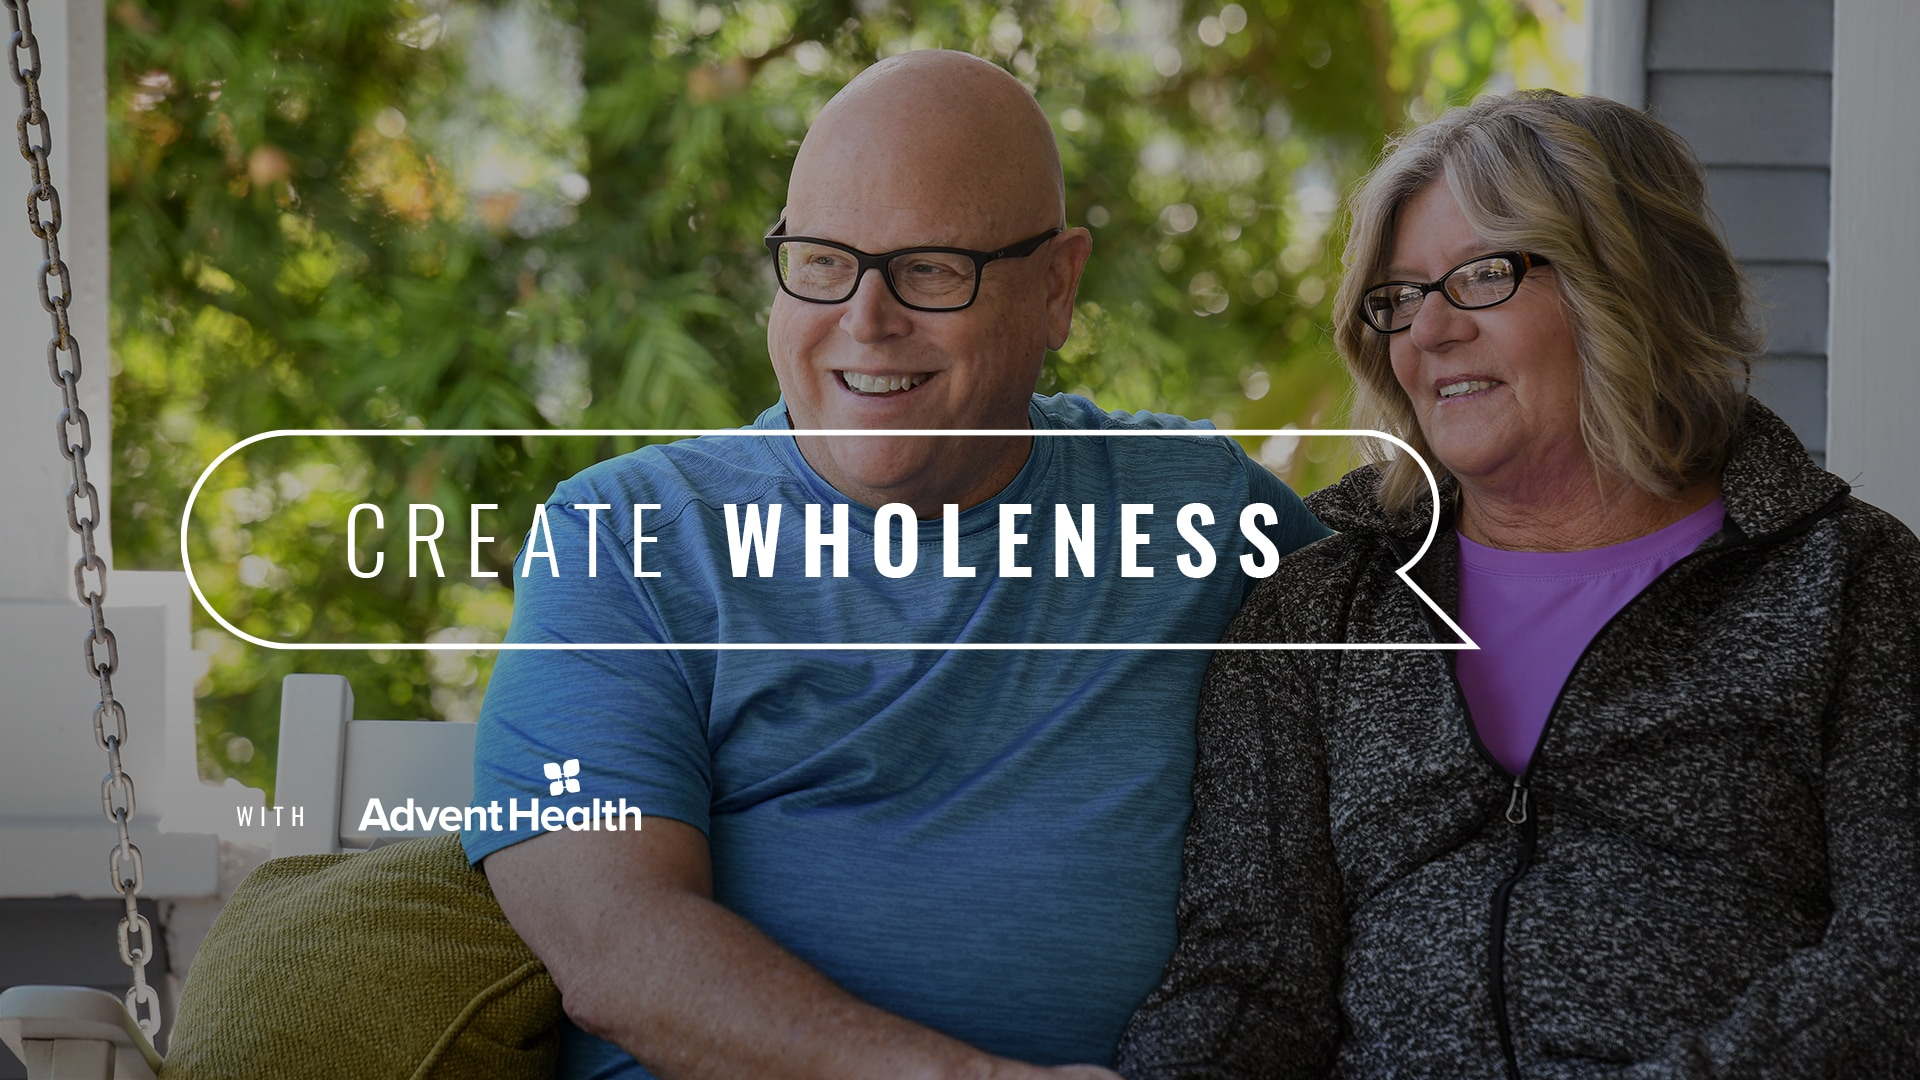 Create Wholeness with AdventHealth